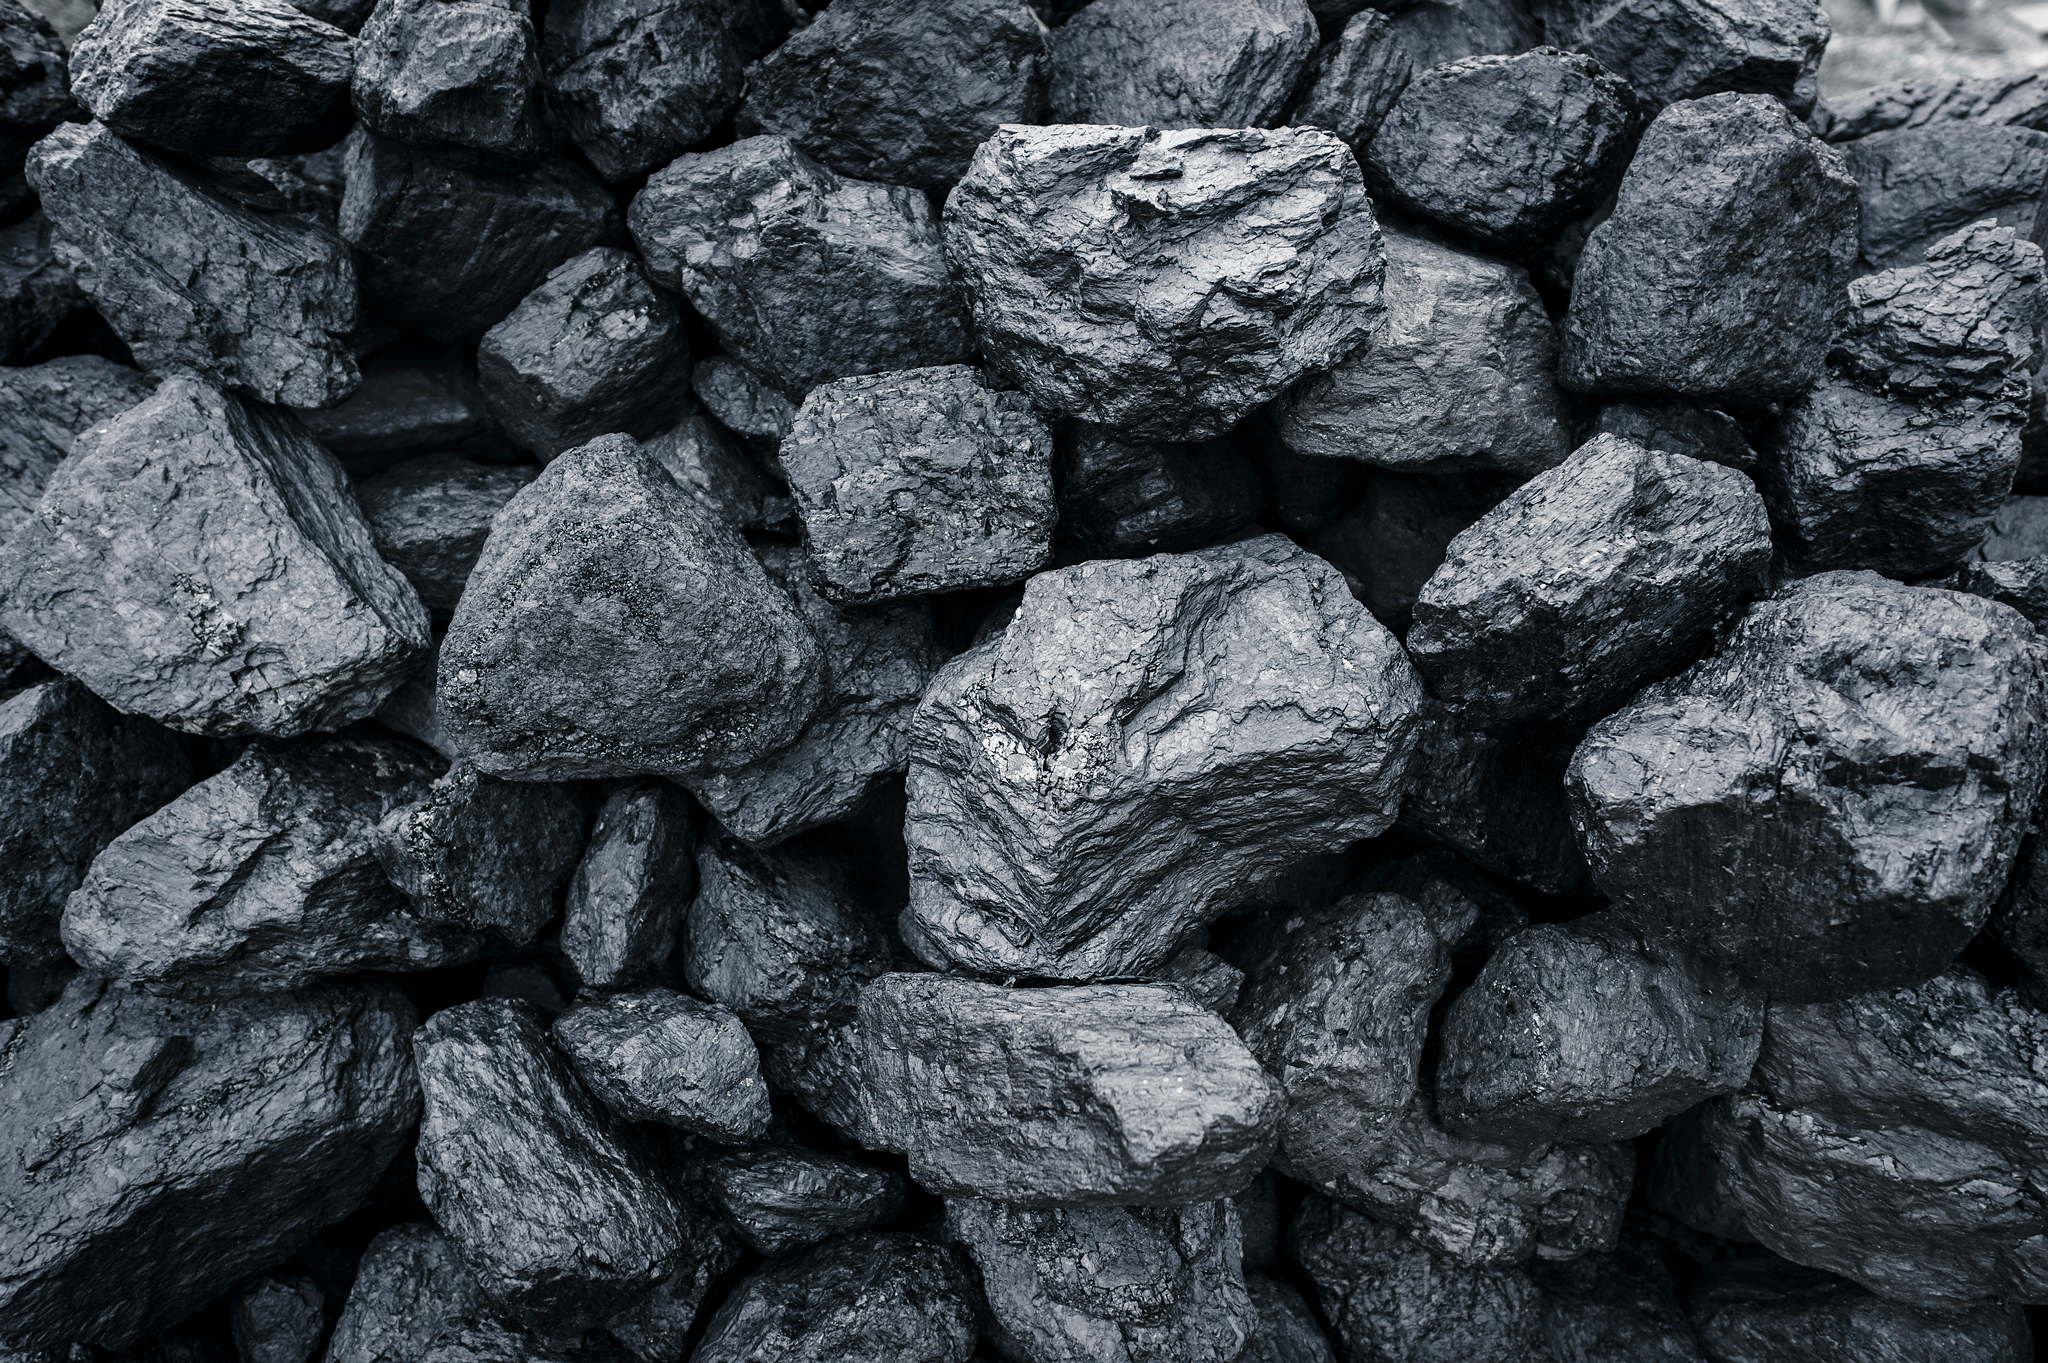 Mound of coal